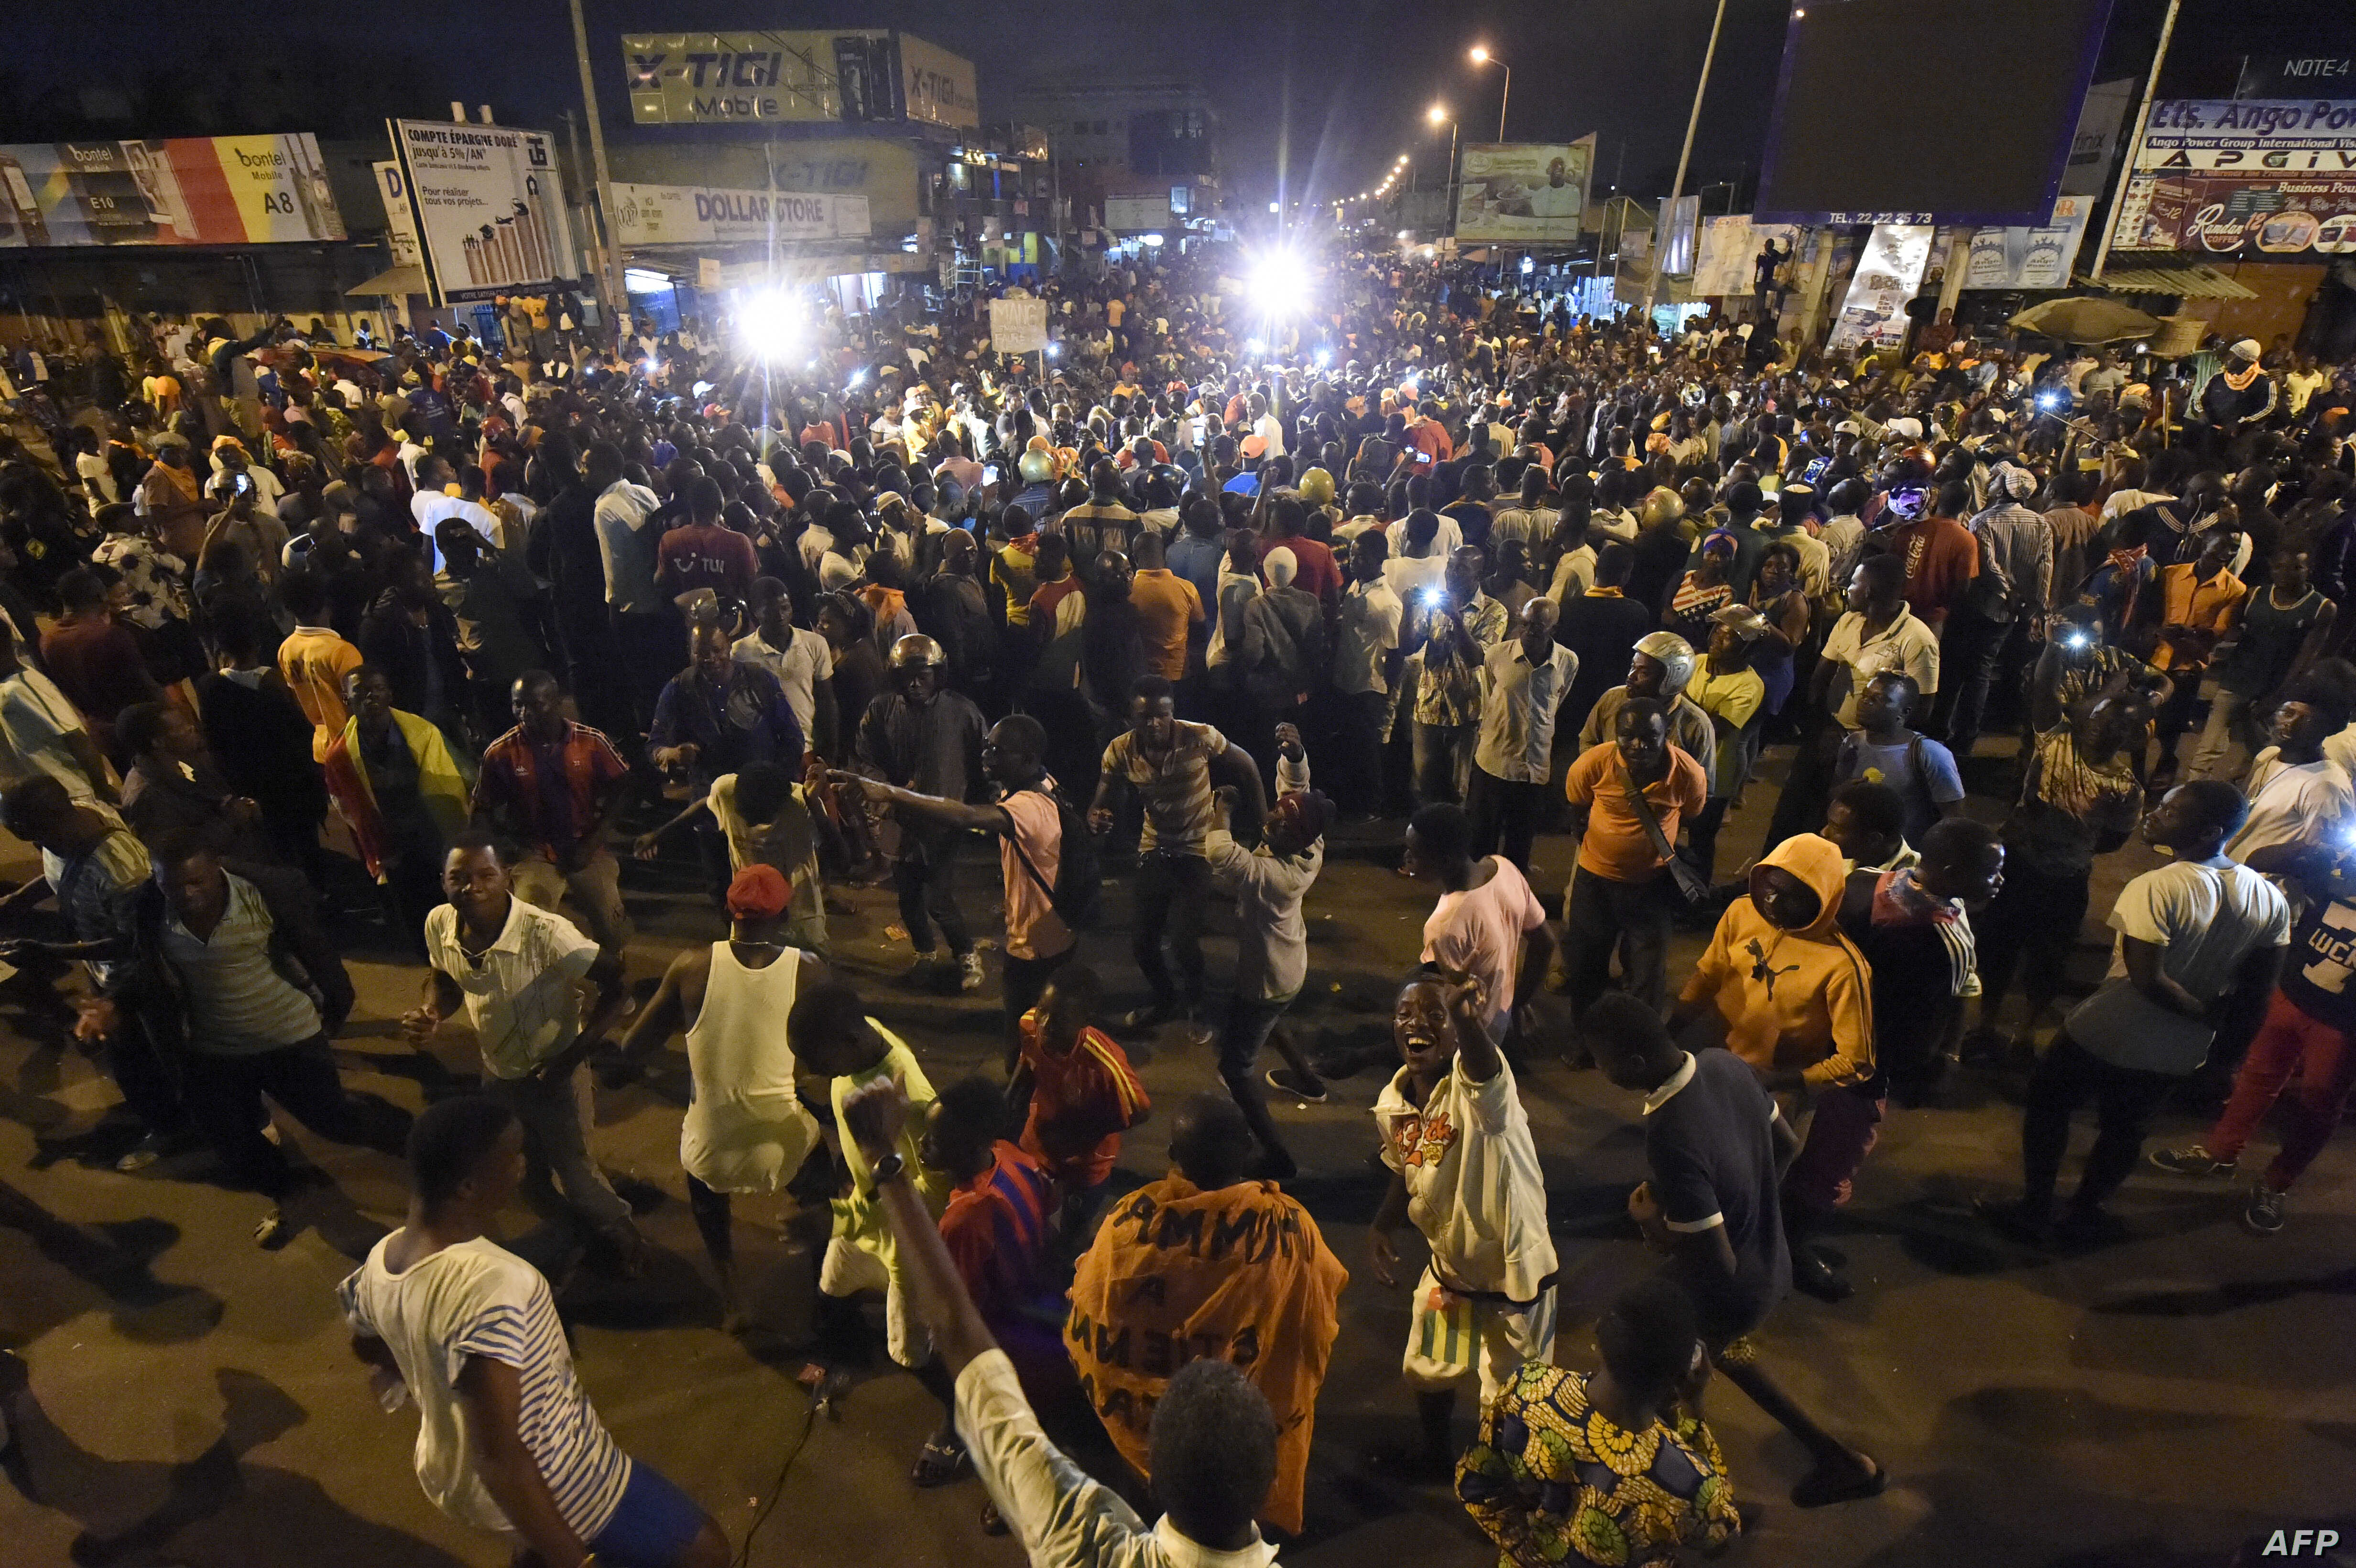 Opposition supporters keep an all-night vigil to press for constitutional reform, during anti-government protests led by a coalition of opposition parties in Lome, Togo, Sept. 7, 2017.